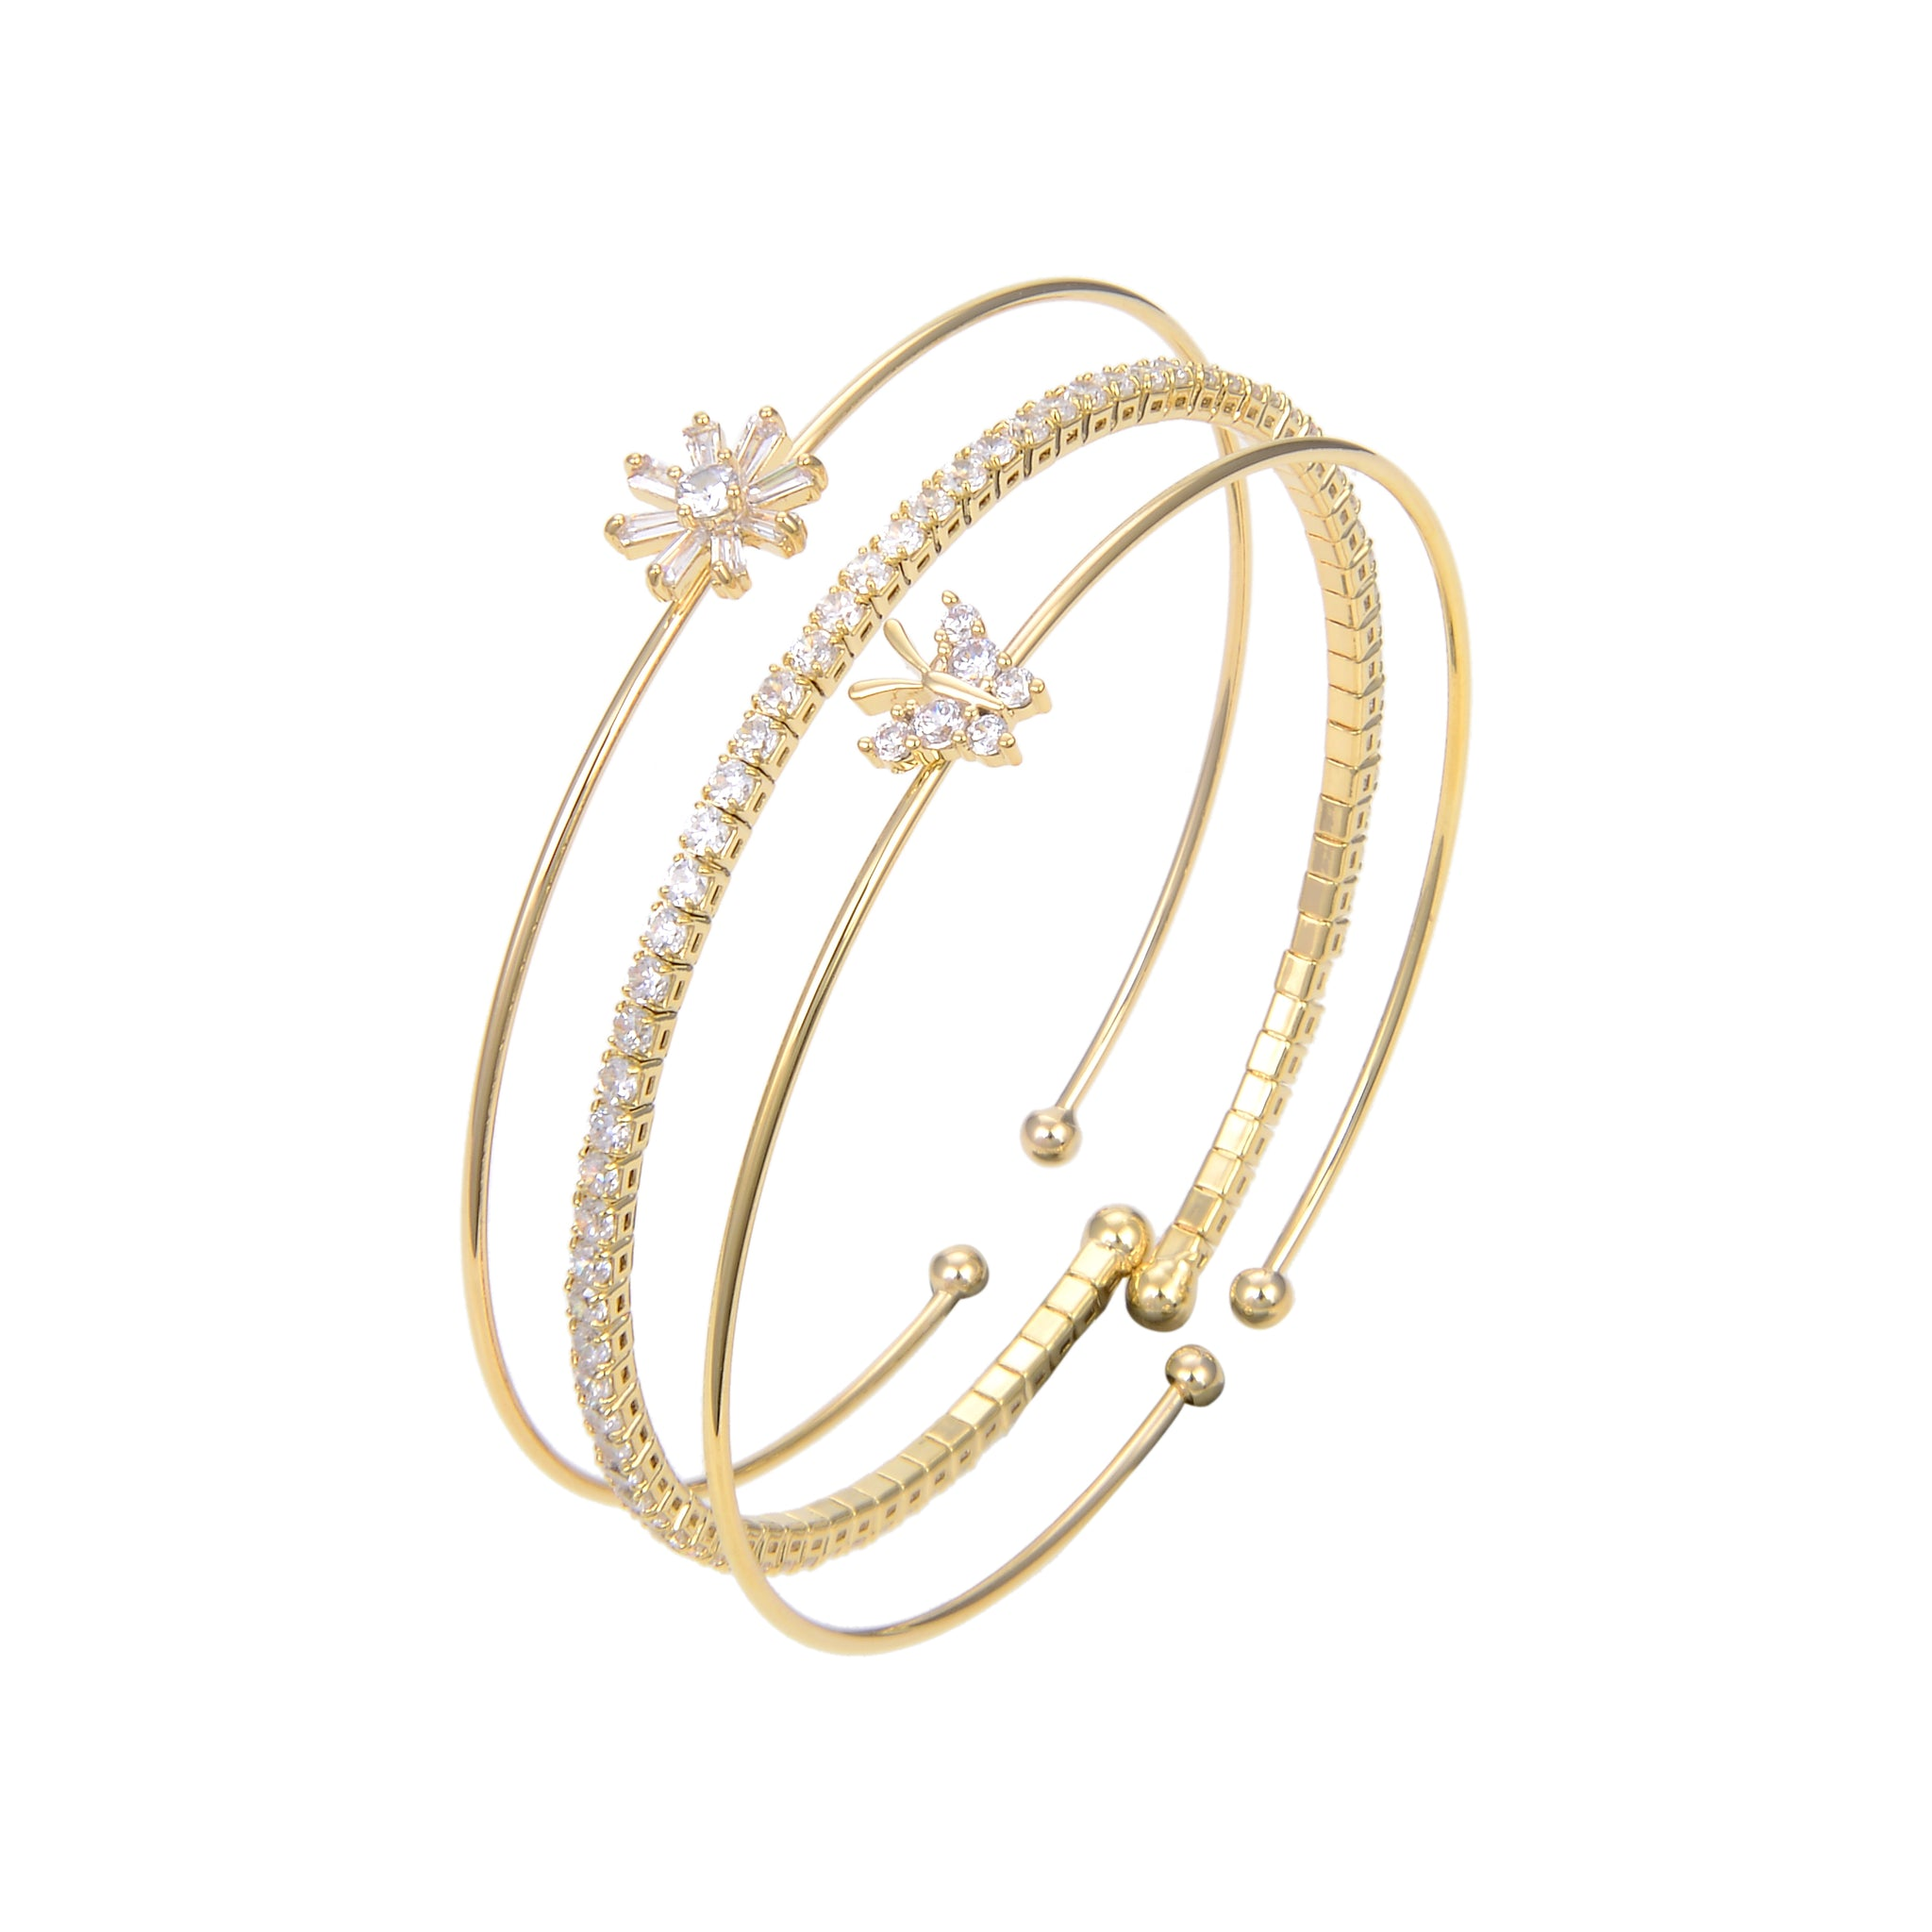 Gold Plated Cubic Zirconia Bangle Bracelet, CZ Adjustable Bangle Bracelet